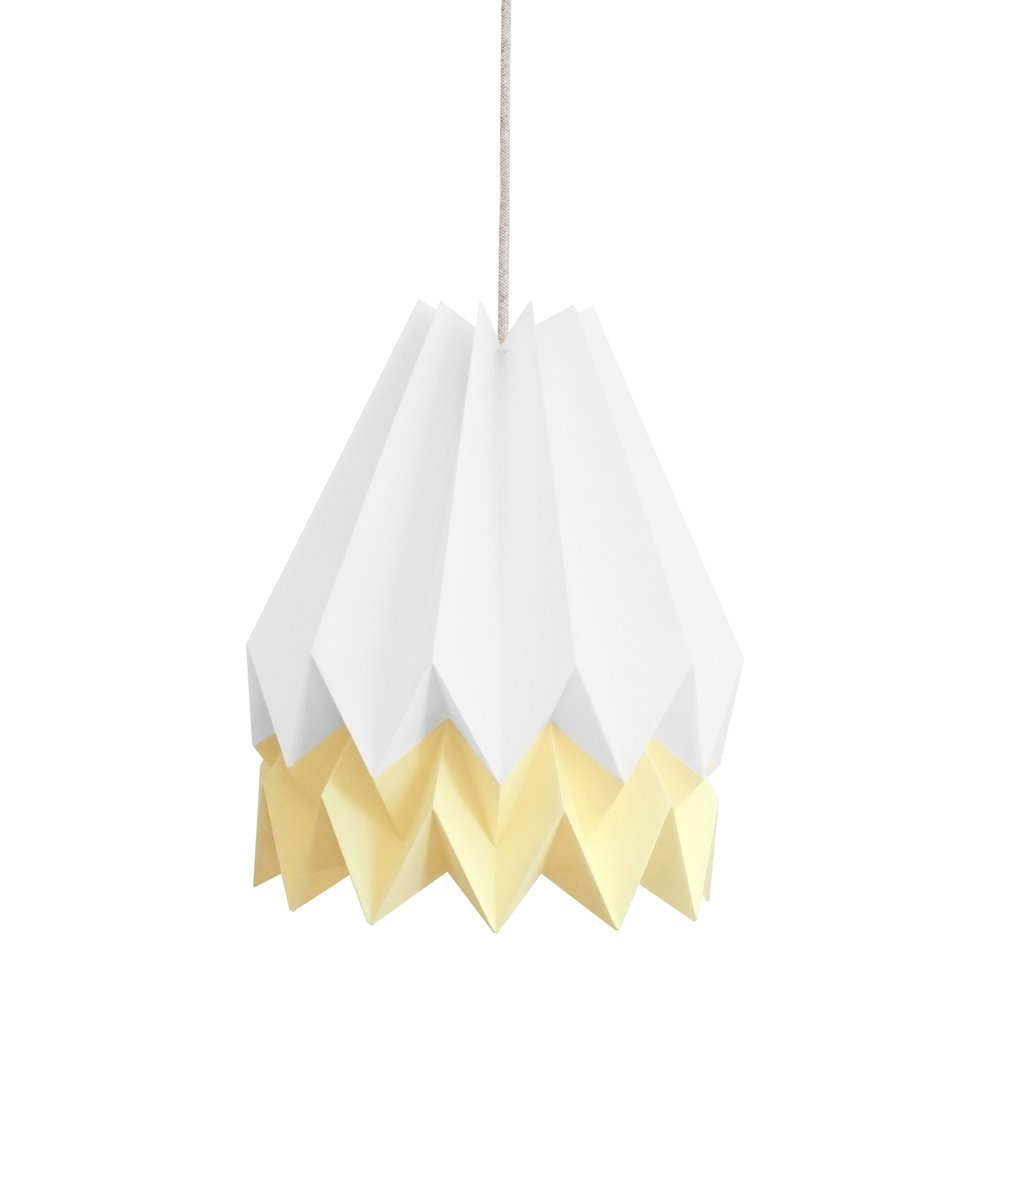 lampe origami blanc polaire avec bande jaune pale par. Black Bedroom Furniture Sets. Home Design Ideas